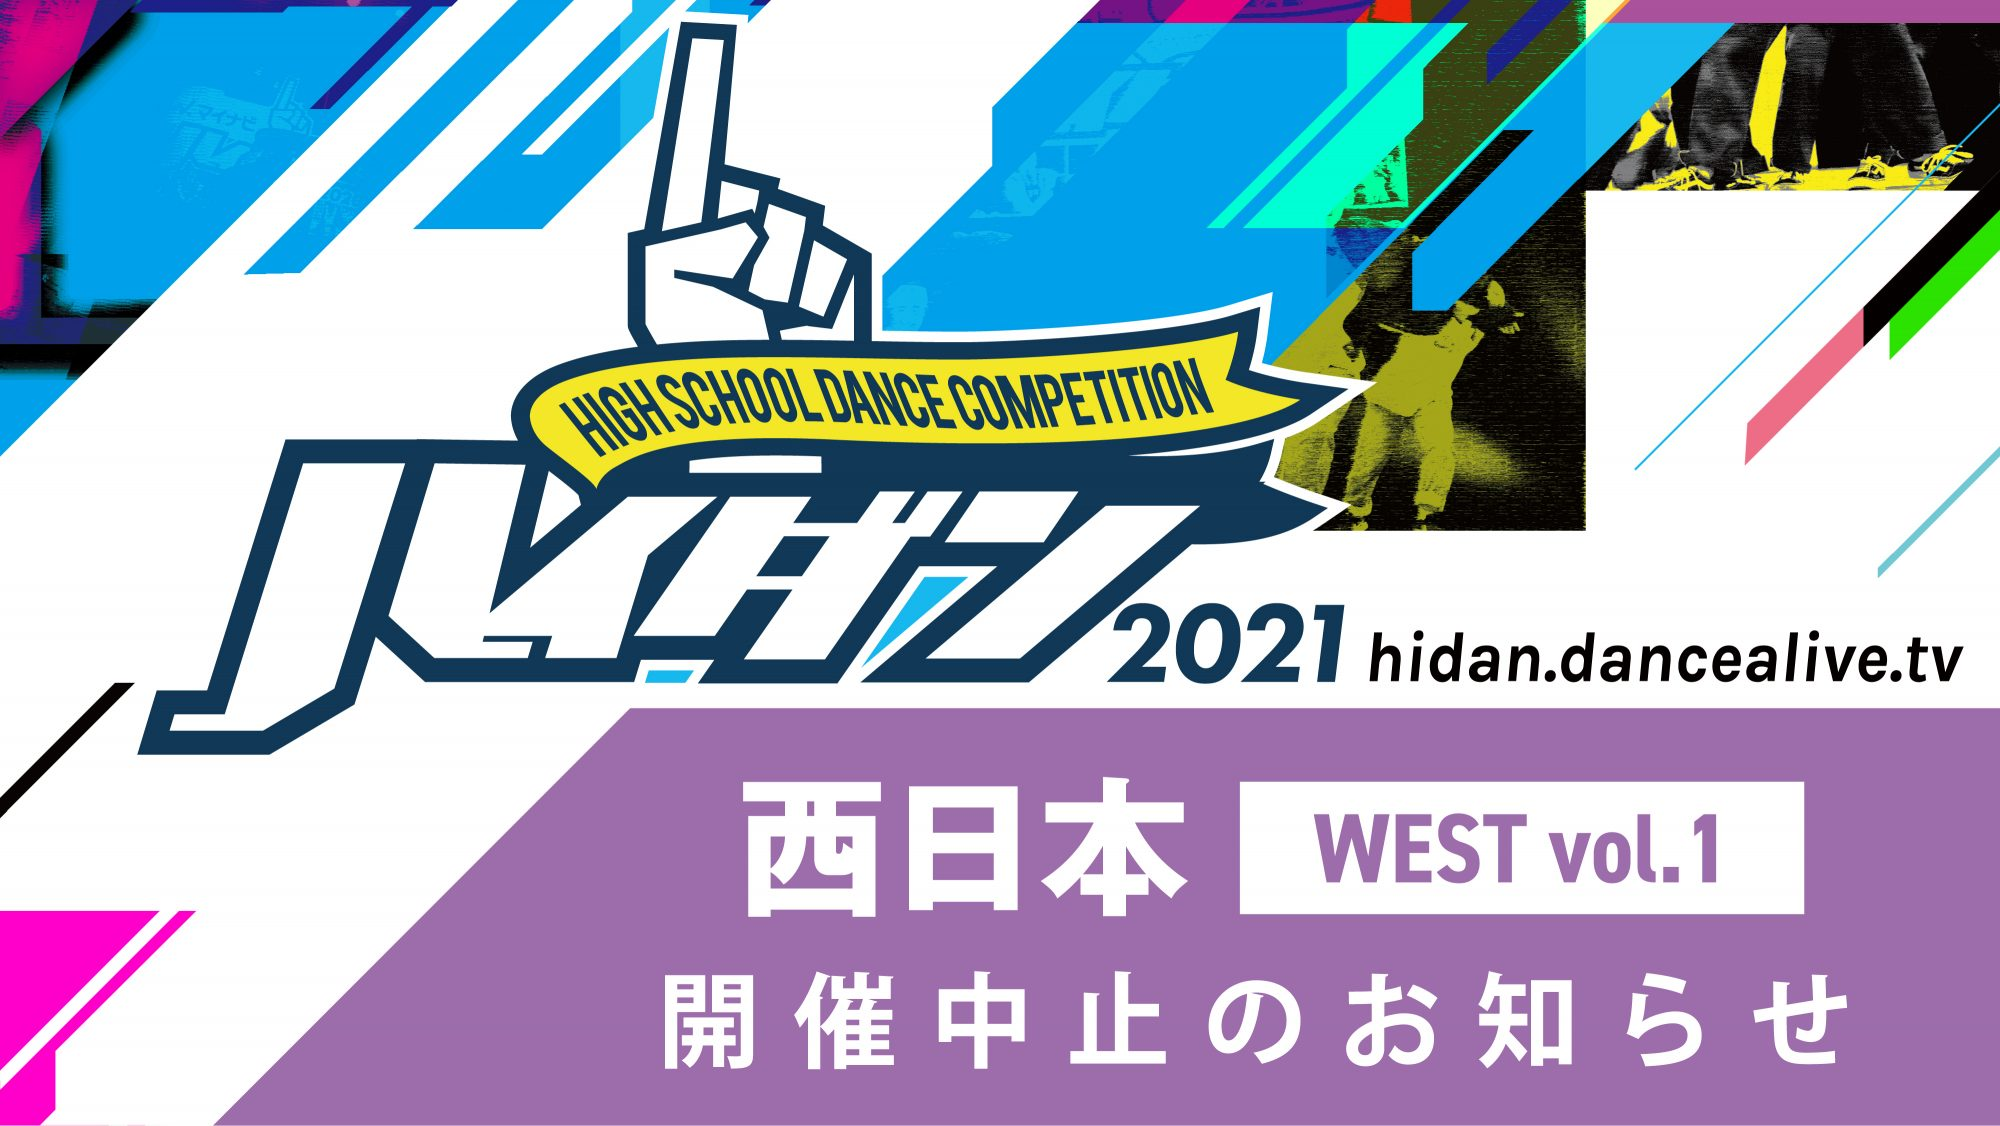 2020.06.14「HIGH SCHOOL DANCE COMPETITION 2021 WEST vol.1」開催中止のお知らせ